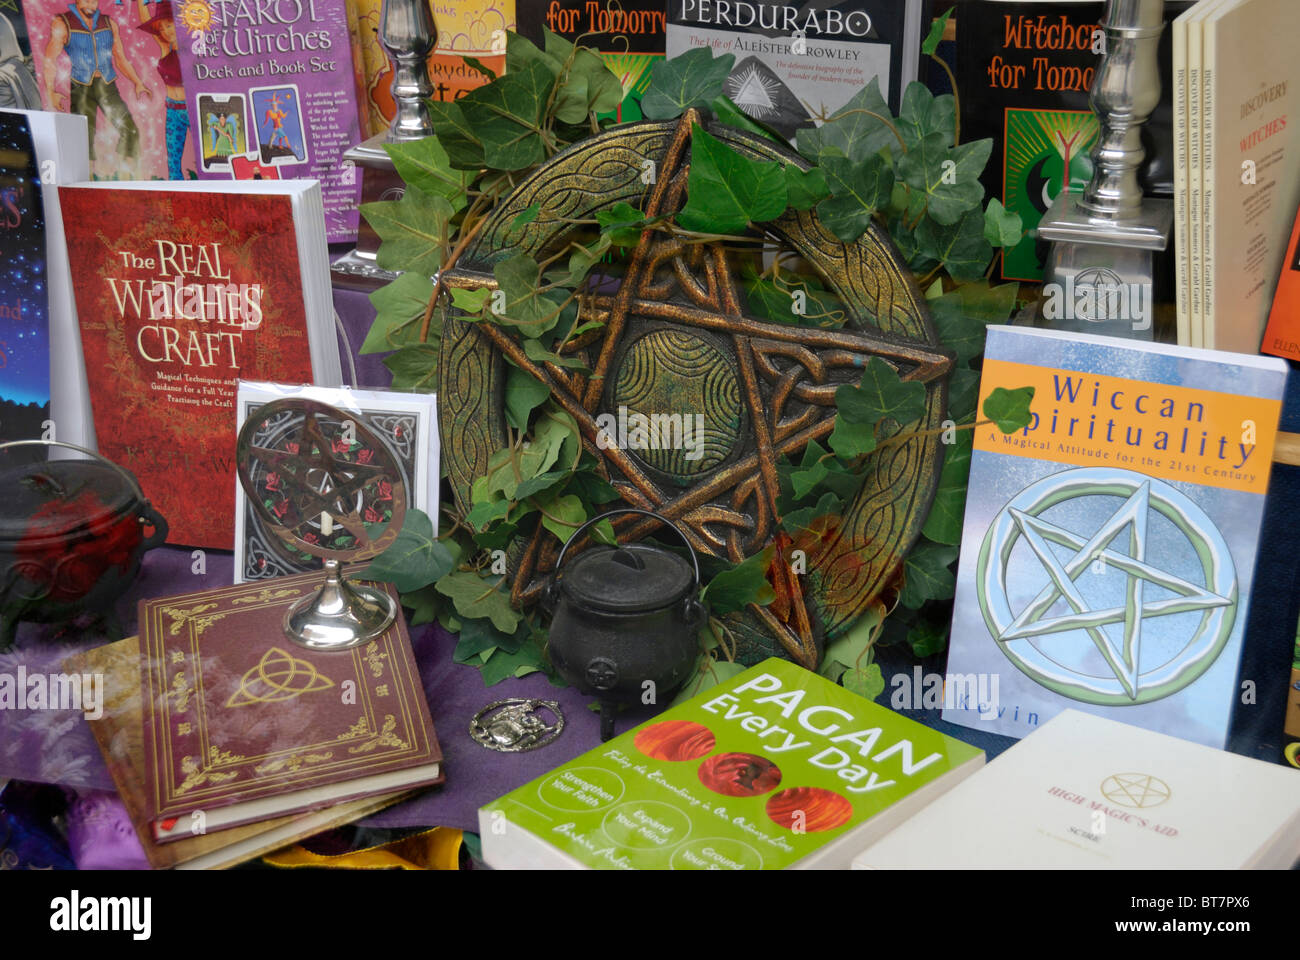 Shop window display of books on Wicca and Paganism - Stock Image